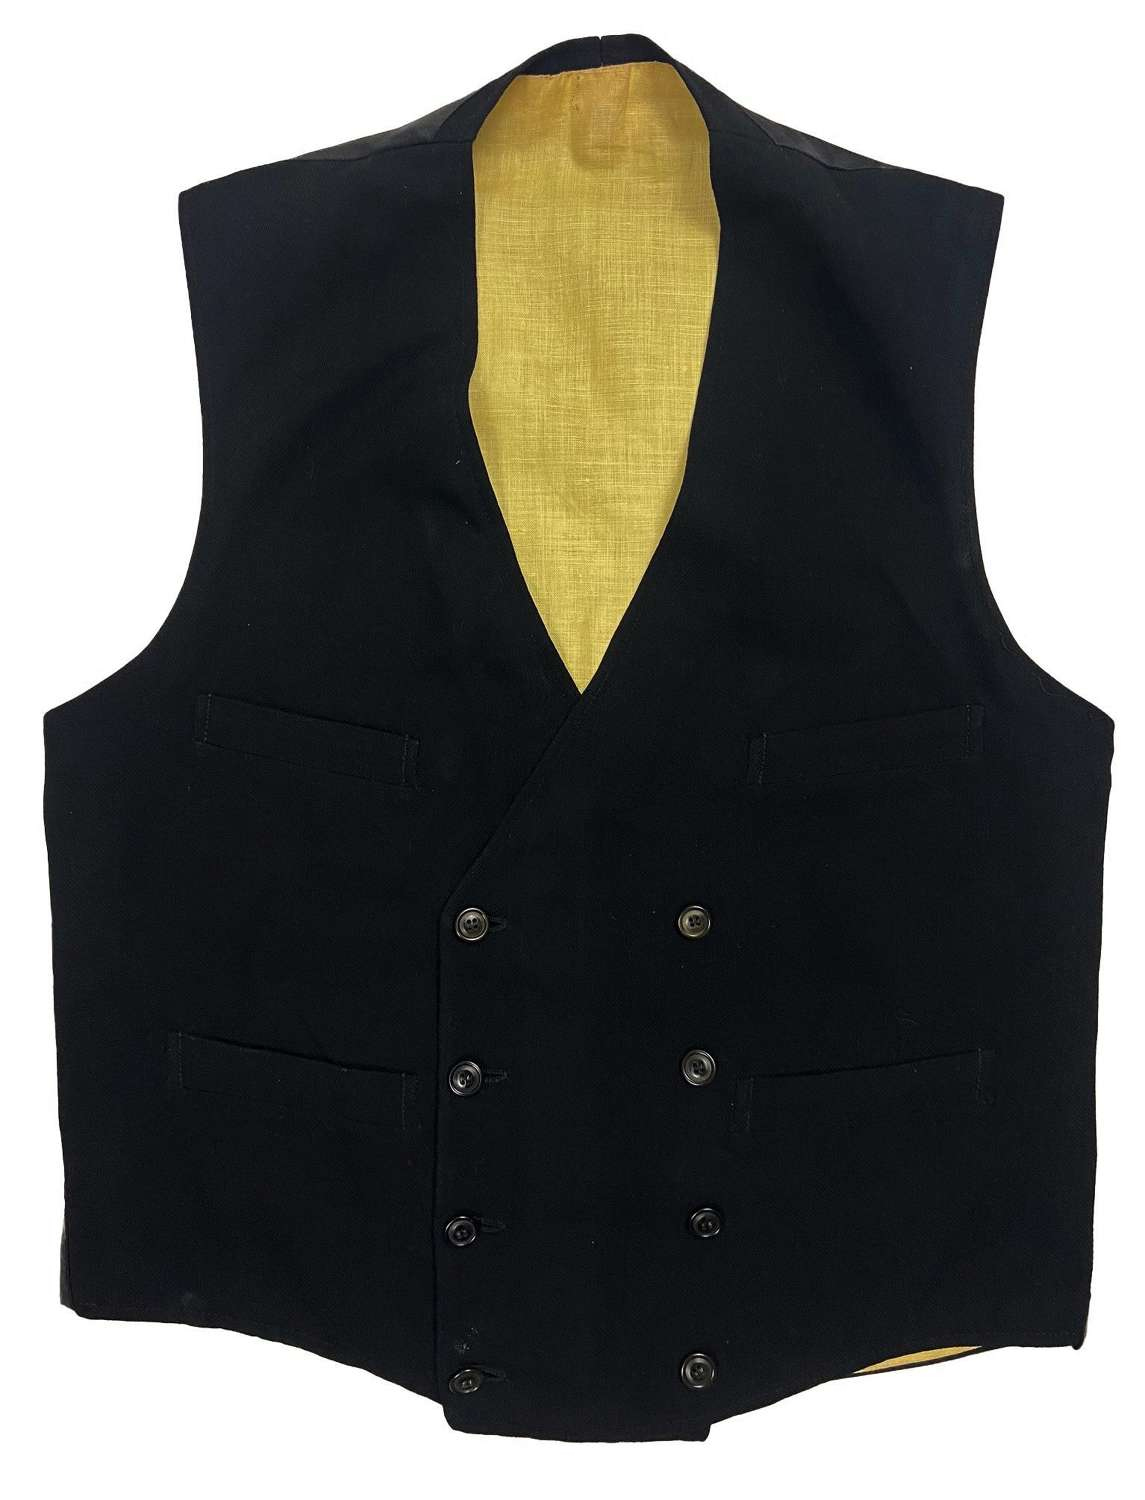 Original 1920s Double Breasted Waistcoat